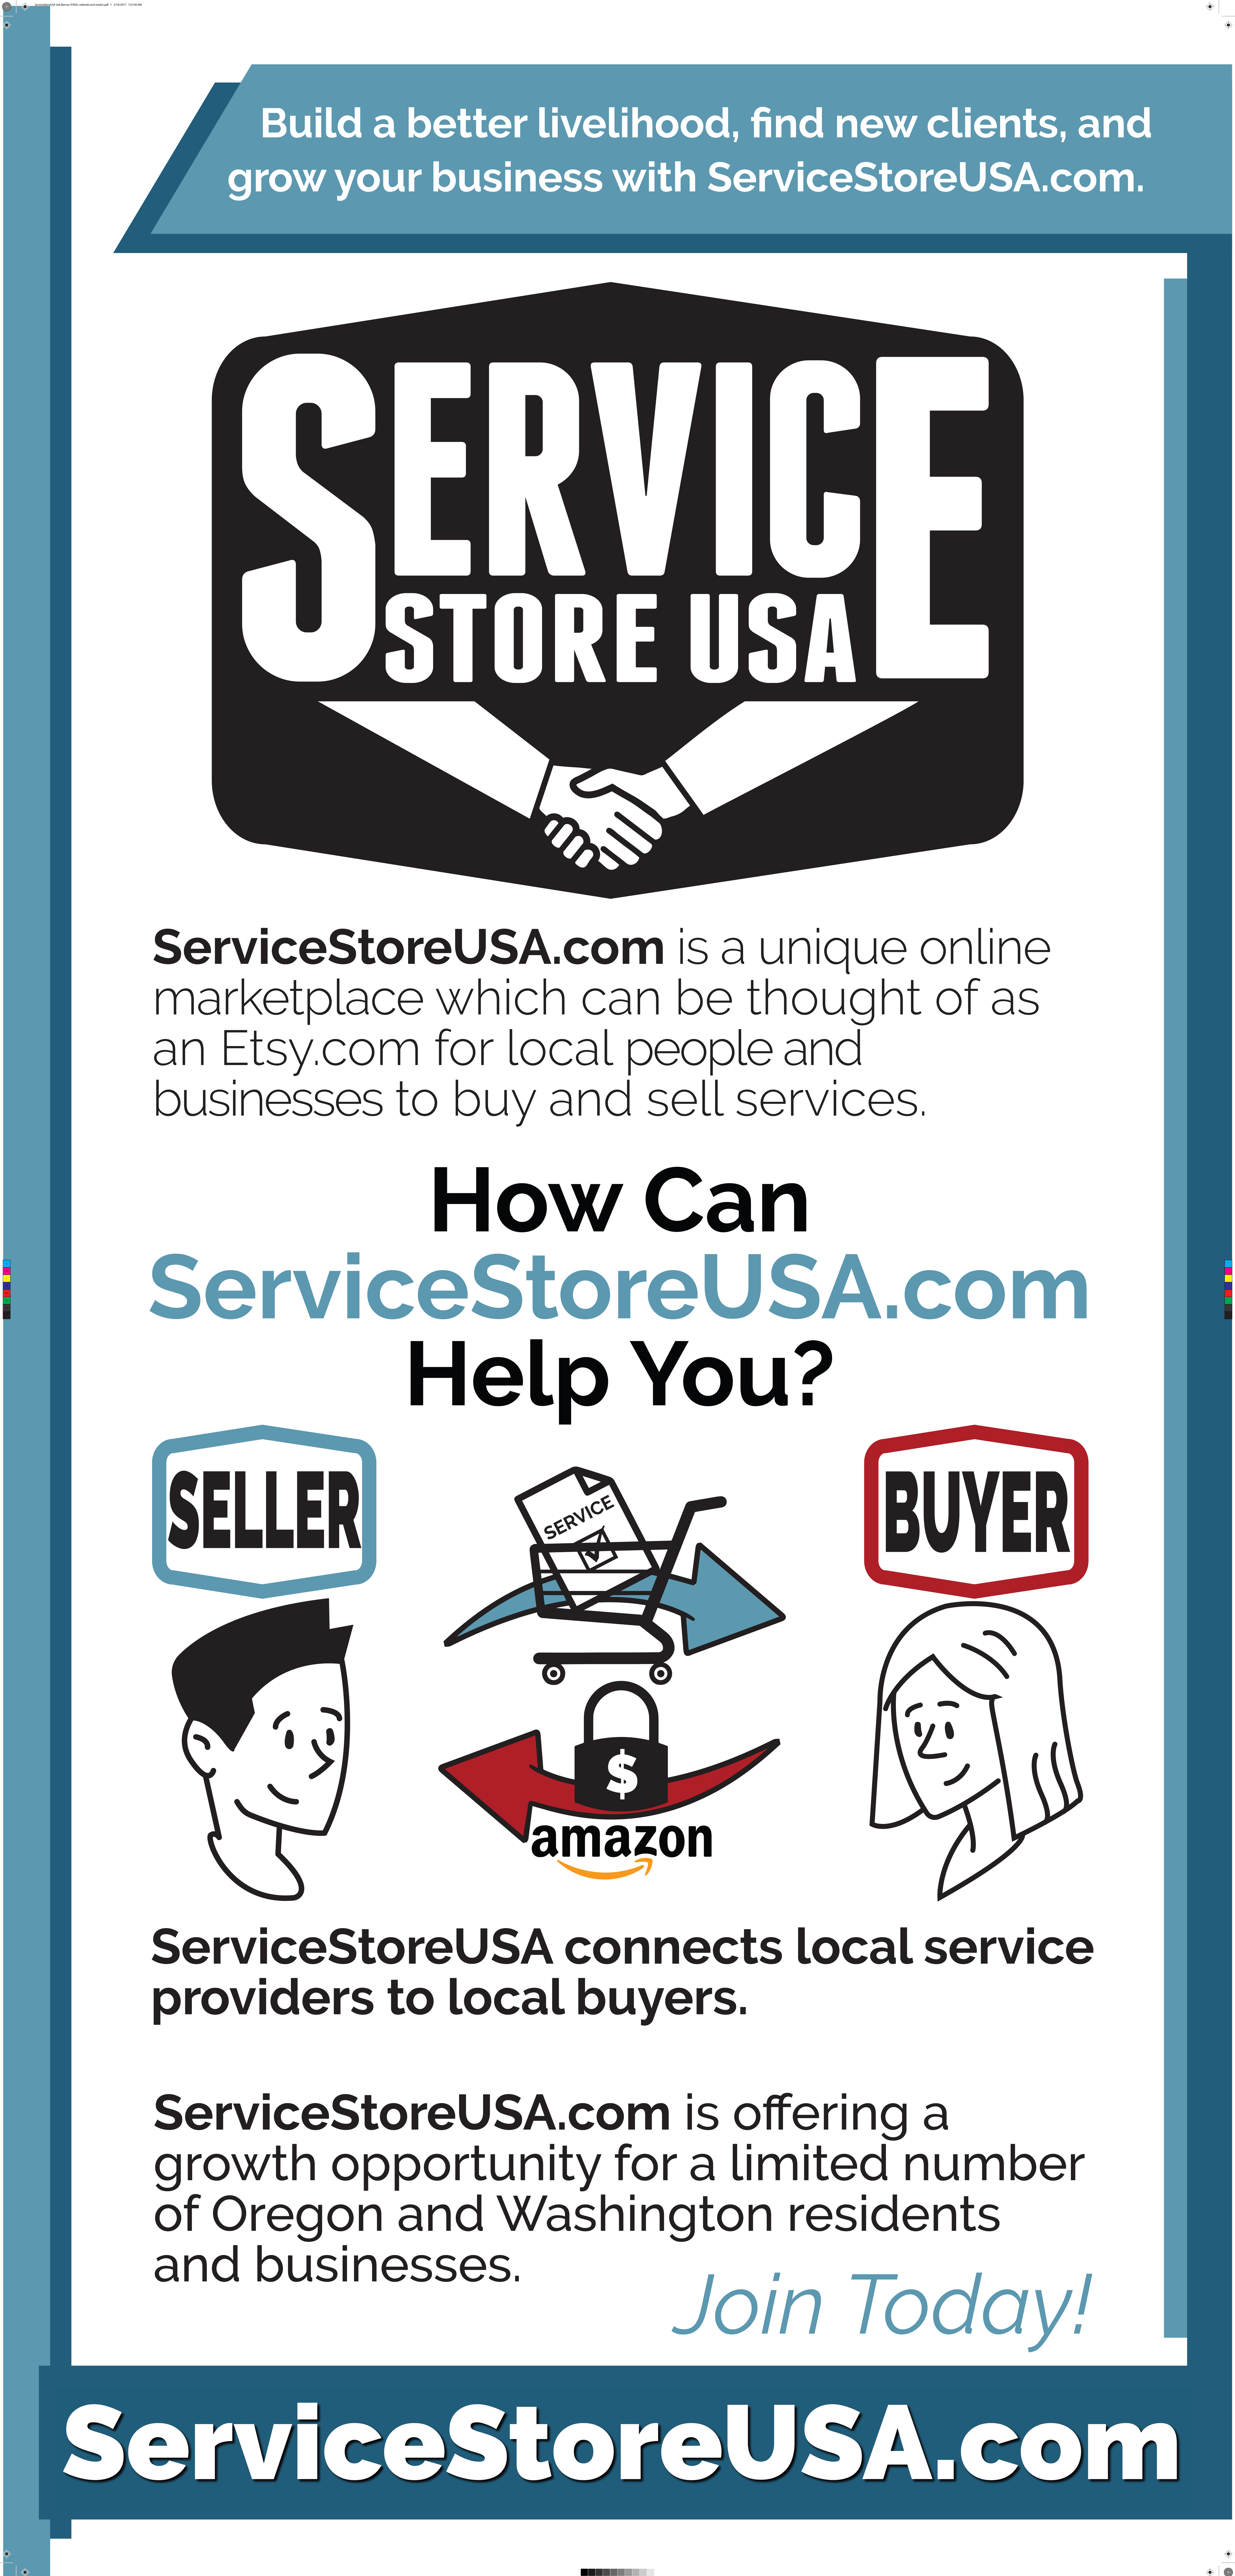 The Service Store USA sign